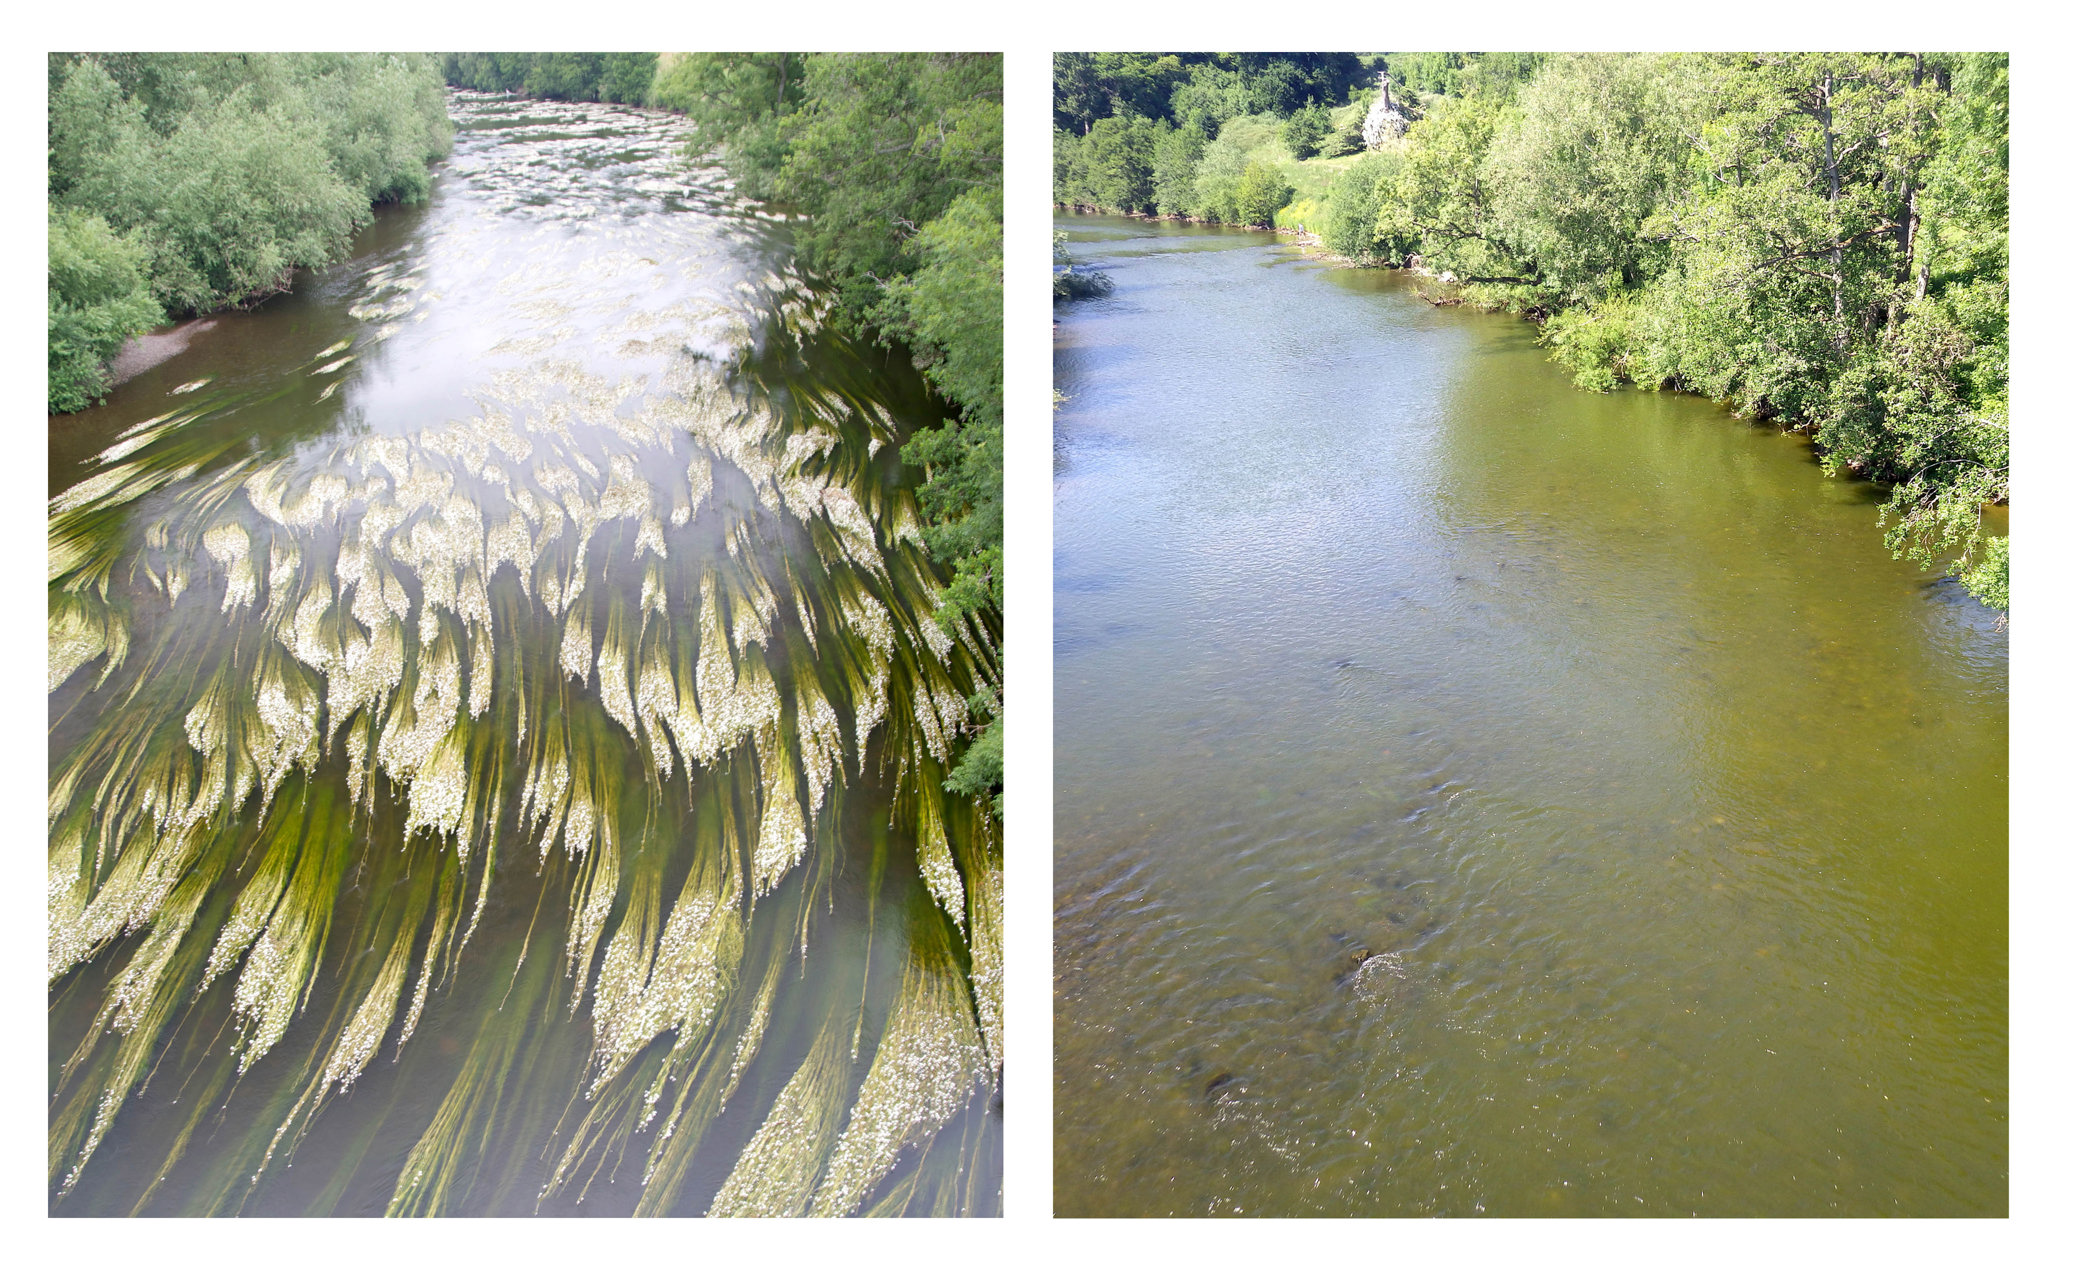 Left: The Wye at Bridge Sollers, a few miles upstream of Hereford, in July 2013 showing clear water and extensive beds of ranunculus. Right: Early June this year. The photo clearly shows the algal bloom and, although earlier in the year, a significan